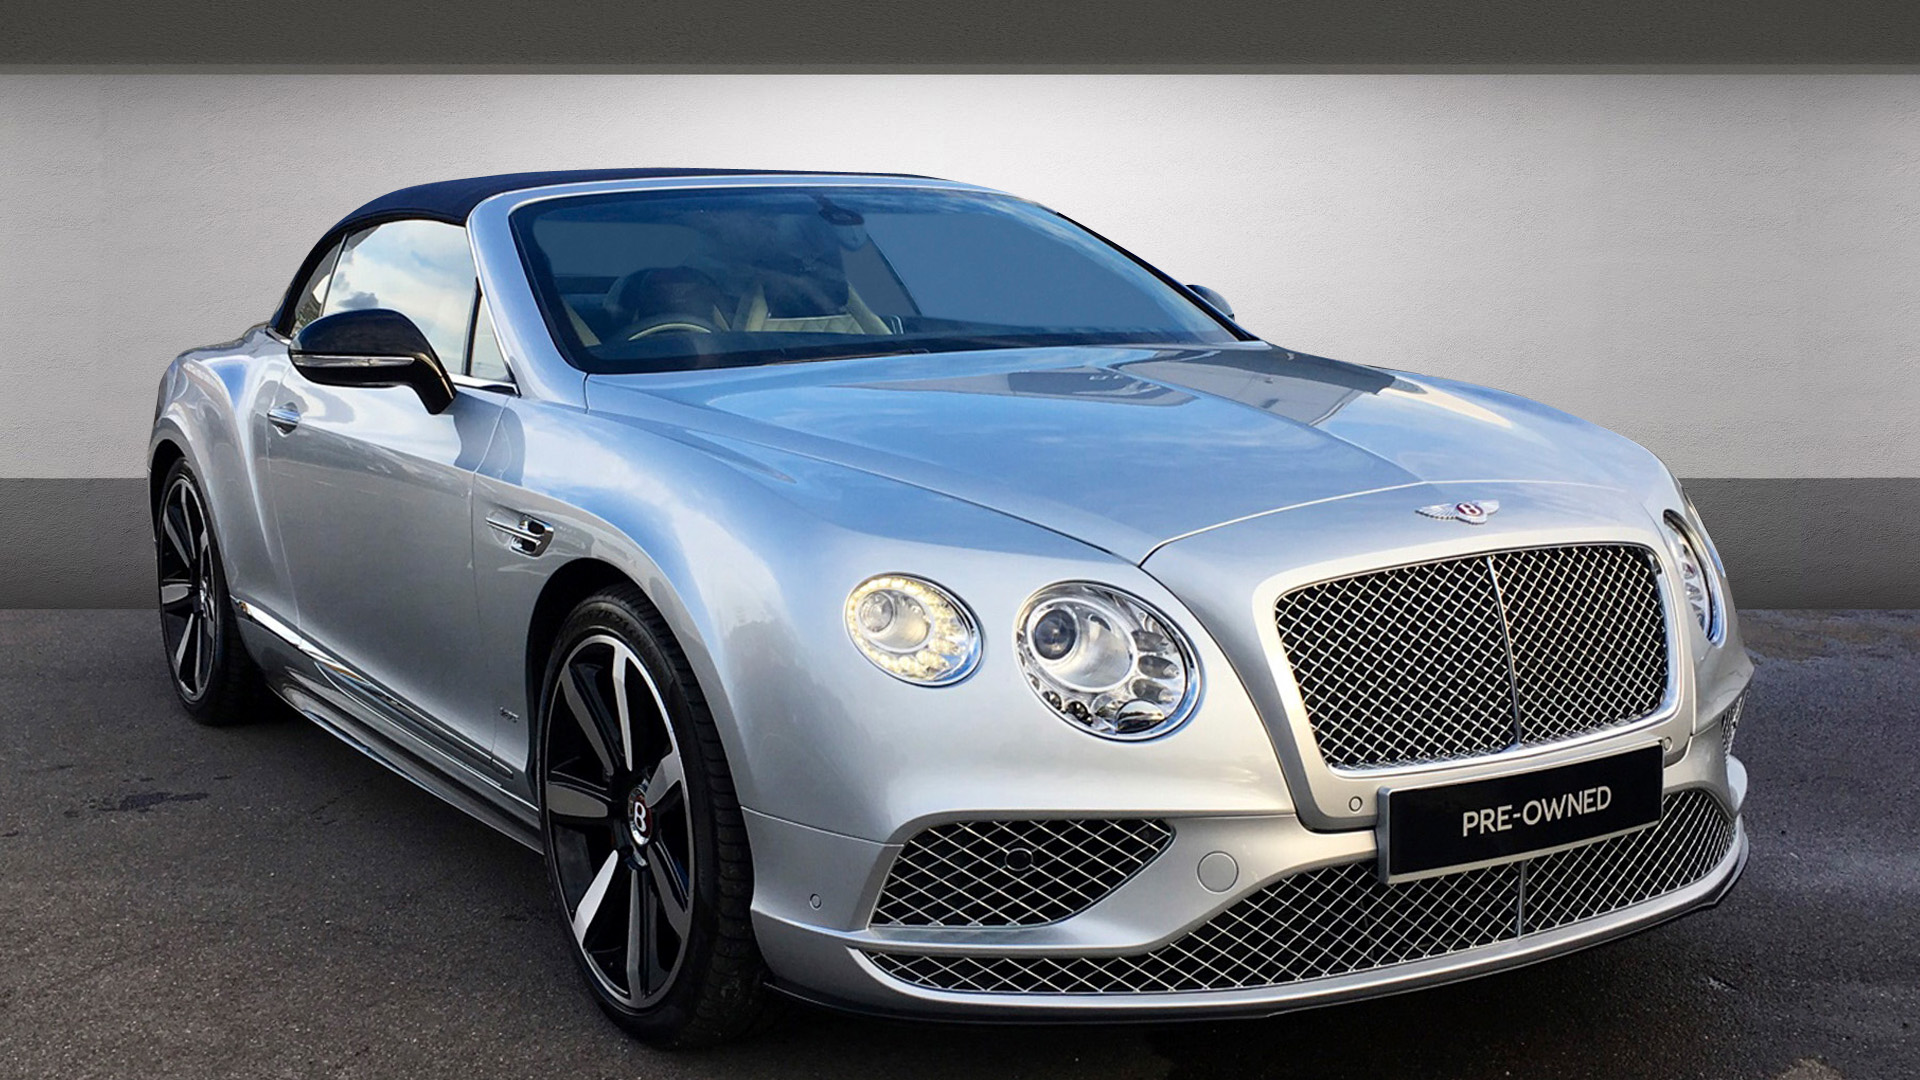 bentley continental gt v8 s convertible used car for sale in chelmsford. Black Bedroom Furniture Sets. Home Design Ideas